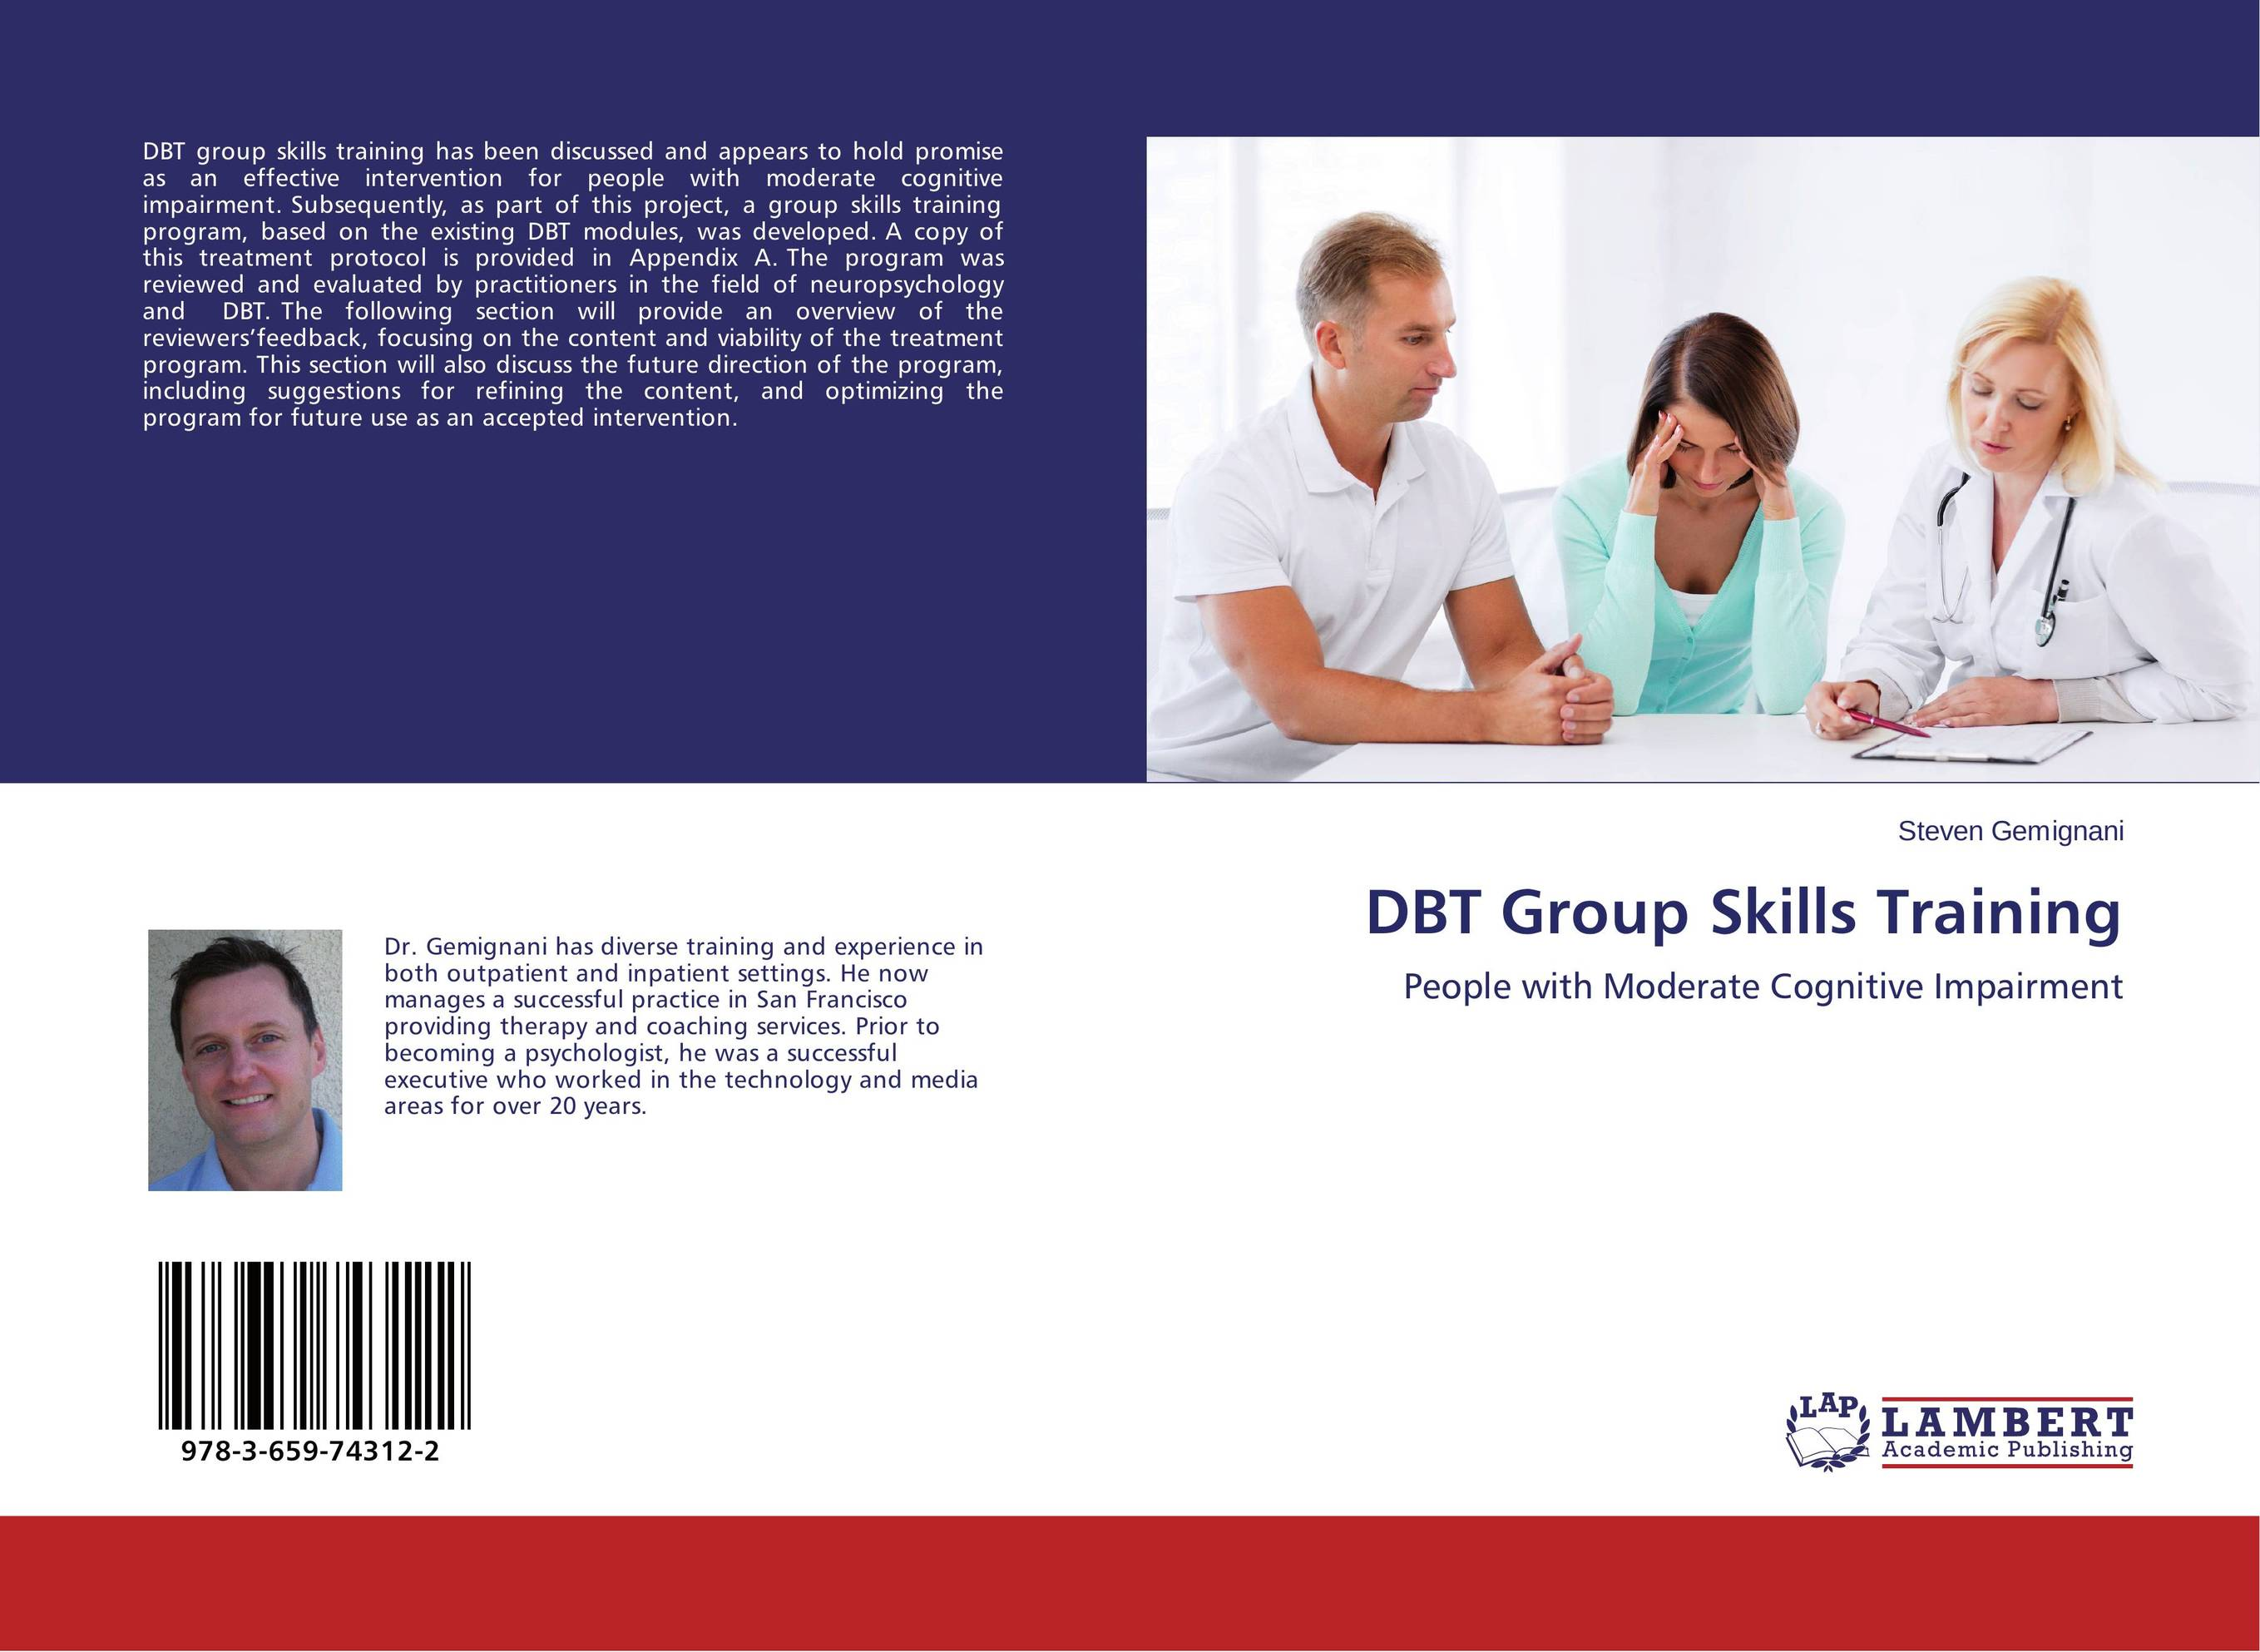 DBT Group Skills Training dbt group skills training